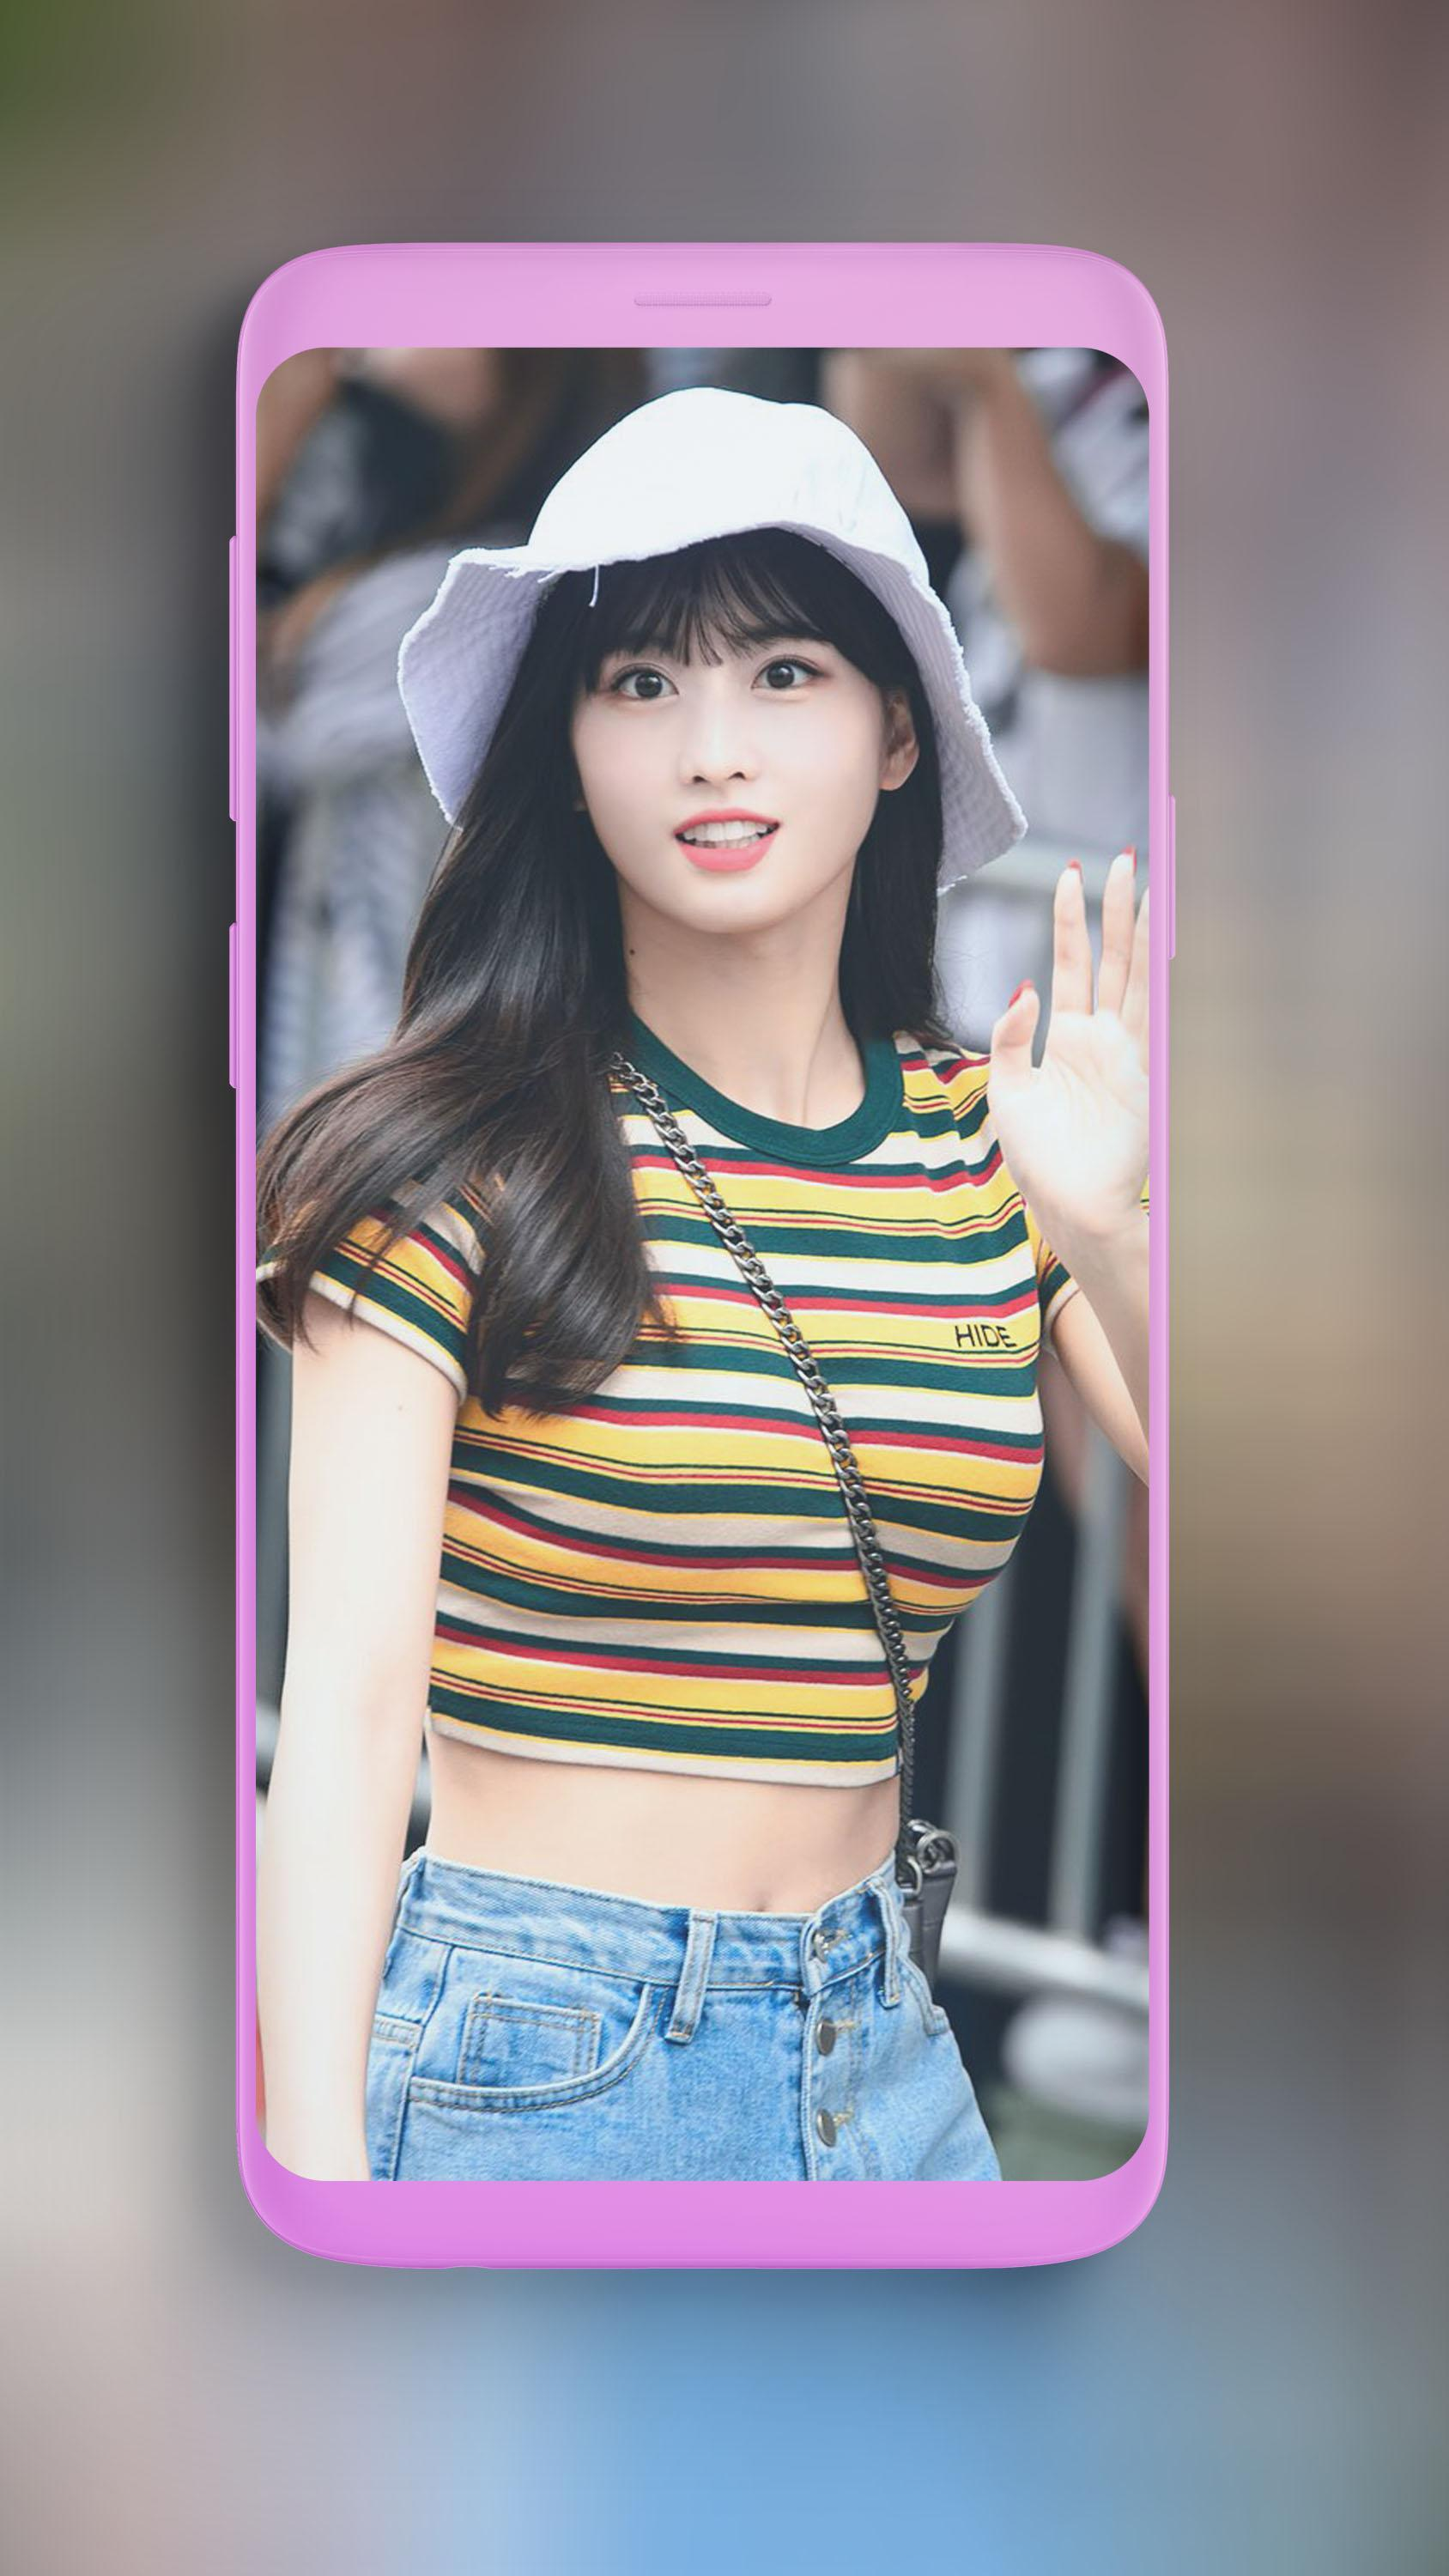 Twice Momo Wallpaper Kpop Hd New For Android Apk Download